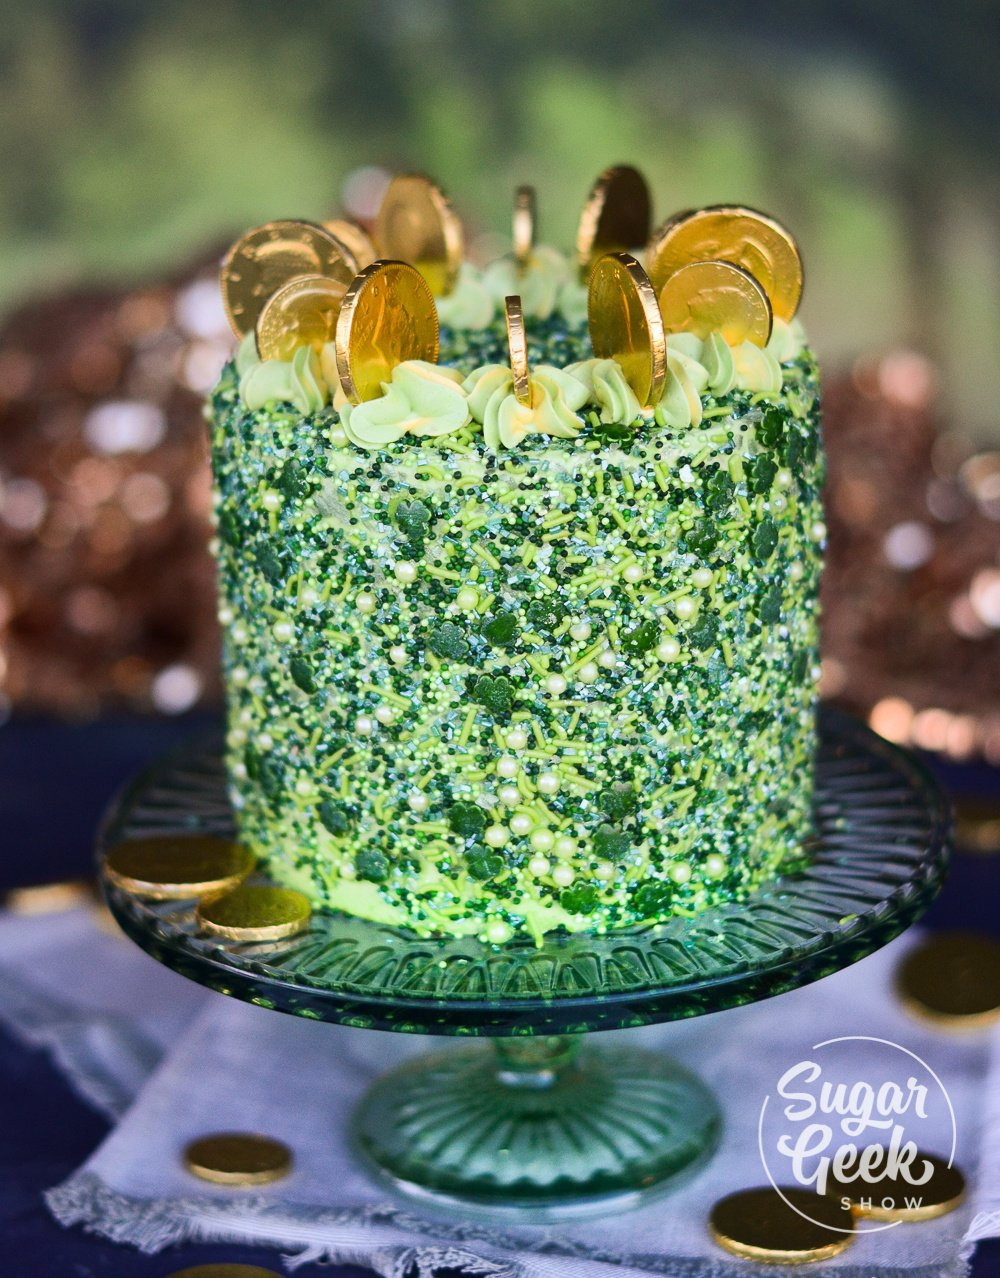 St. Patrick's day cake made with green velvet cake, custom sprinkles and your own edible glitter